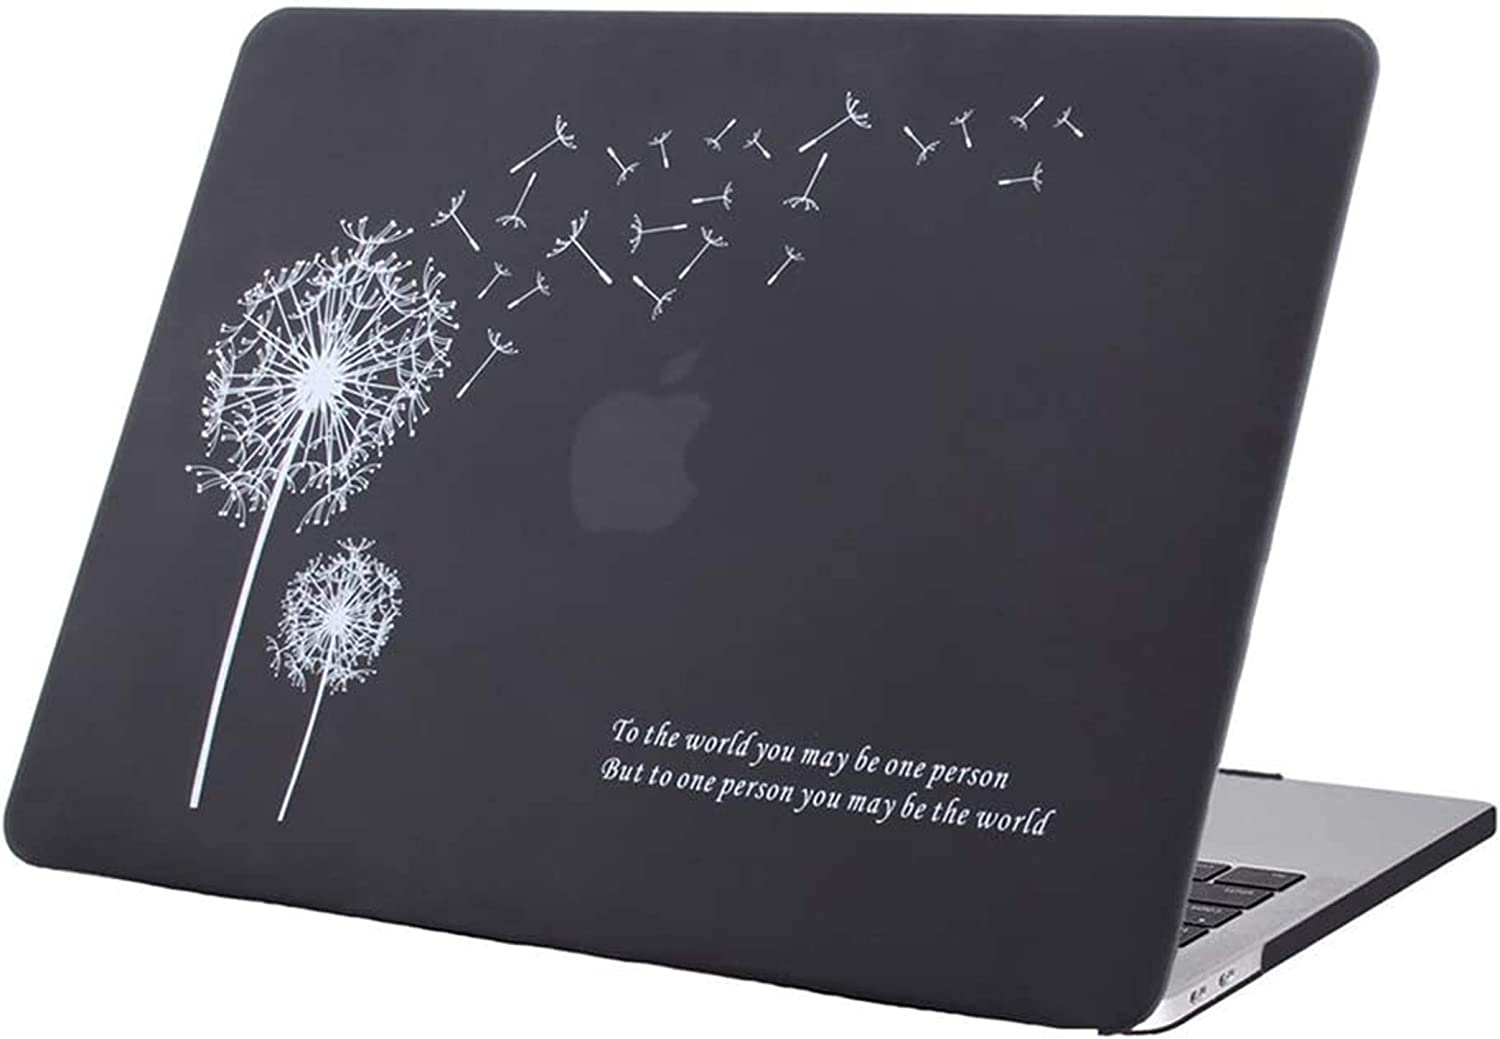 MacBook Pro 13 inch Case 2020 2019 2018 2017 2016 Release A2289 A2251 A2159 A1989 A1706 A1708, Plastic Hard Shell Case Cover&Screen Protector Compatible with MacBook Pro 13 inch, Black